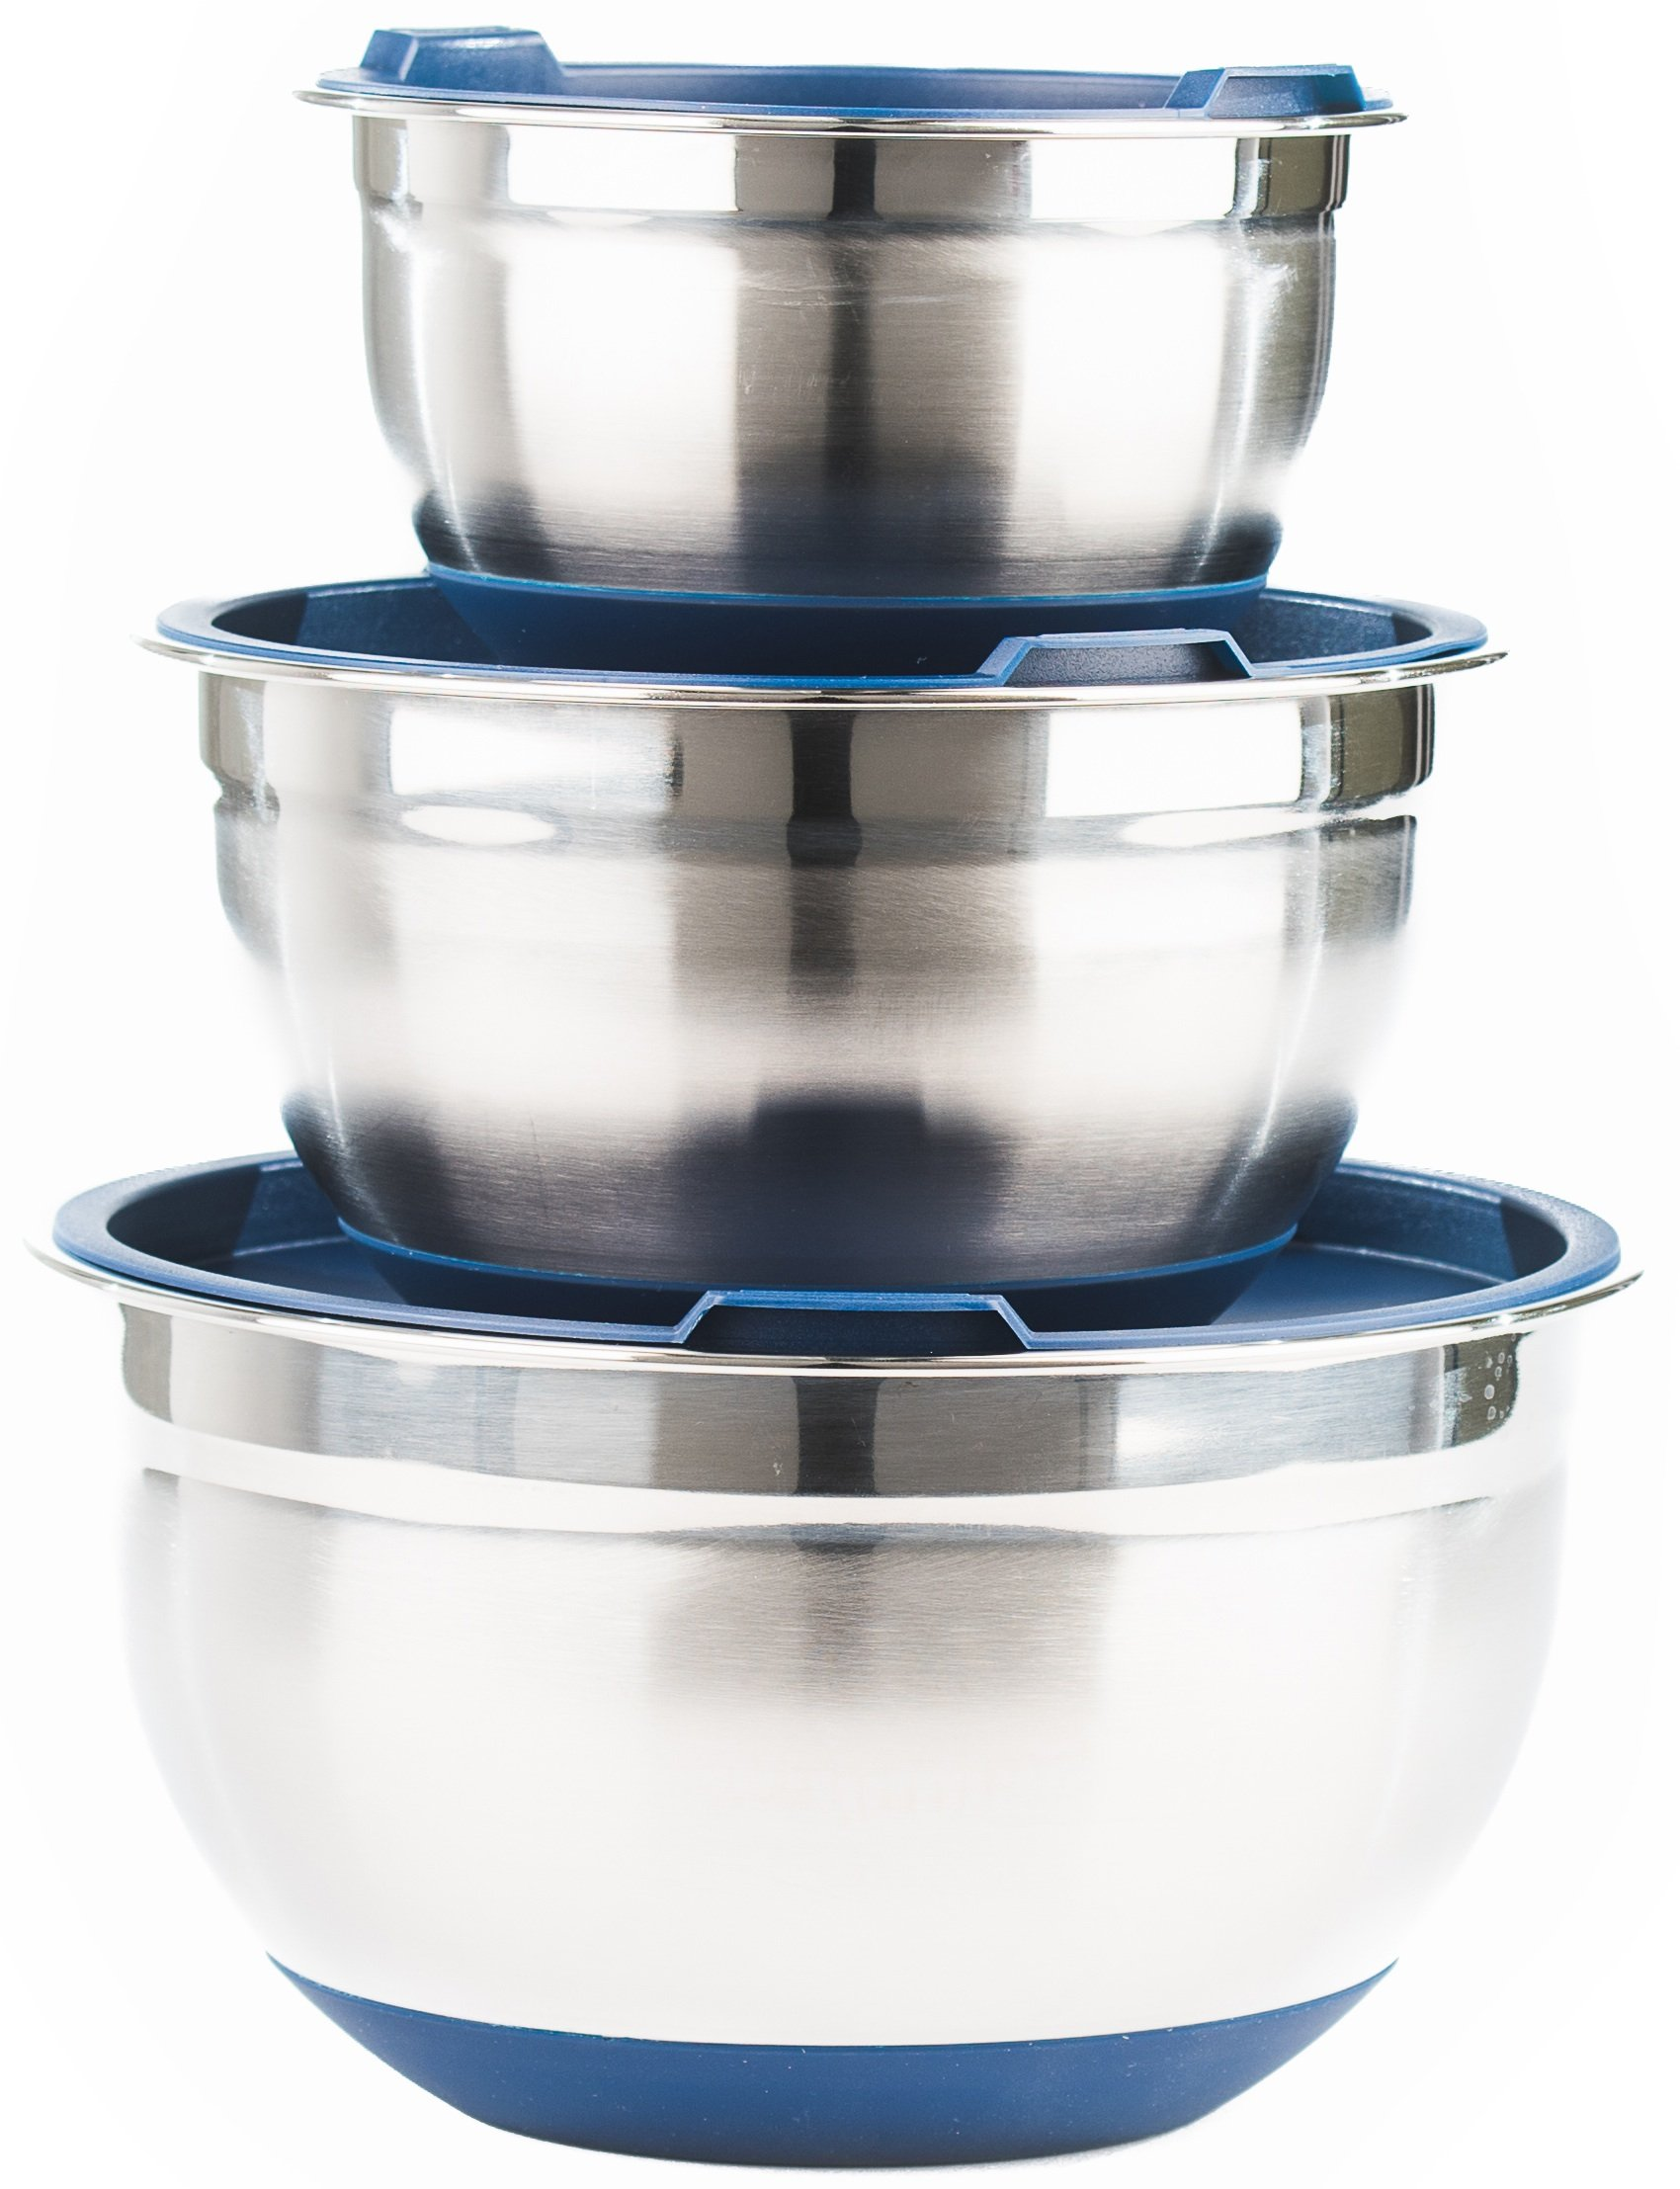 Fitzroy and Fox Non-Slip Stainless Steel Mixing Bowls with Lids, Set of 3, Blue by Fitzroy and Fox (Image #1)